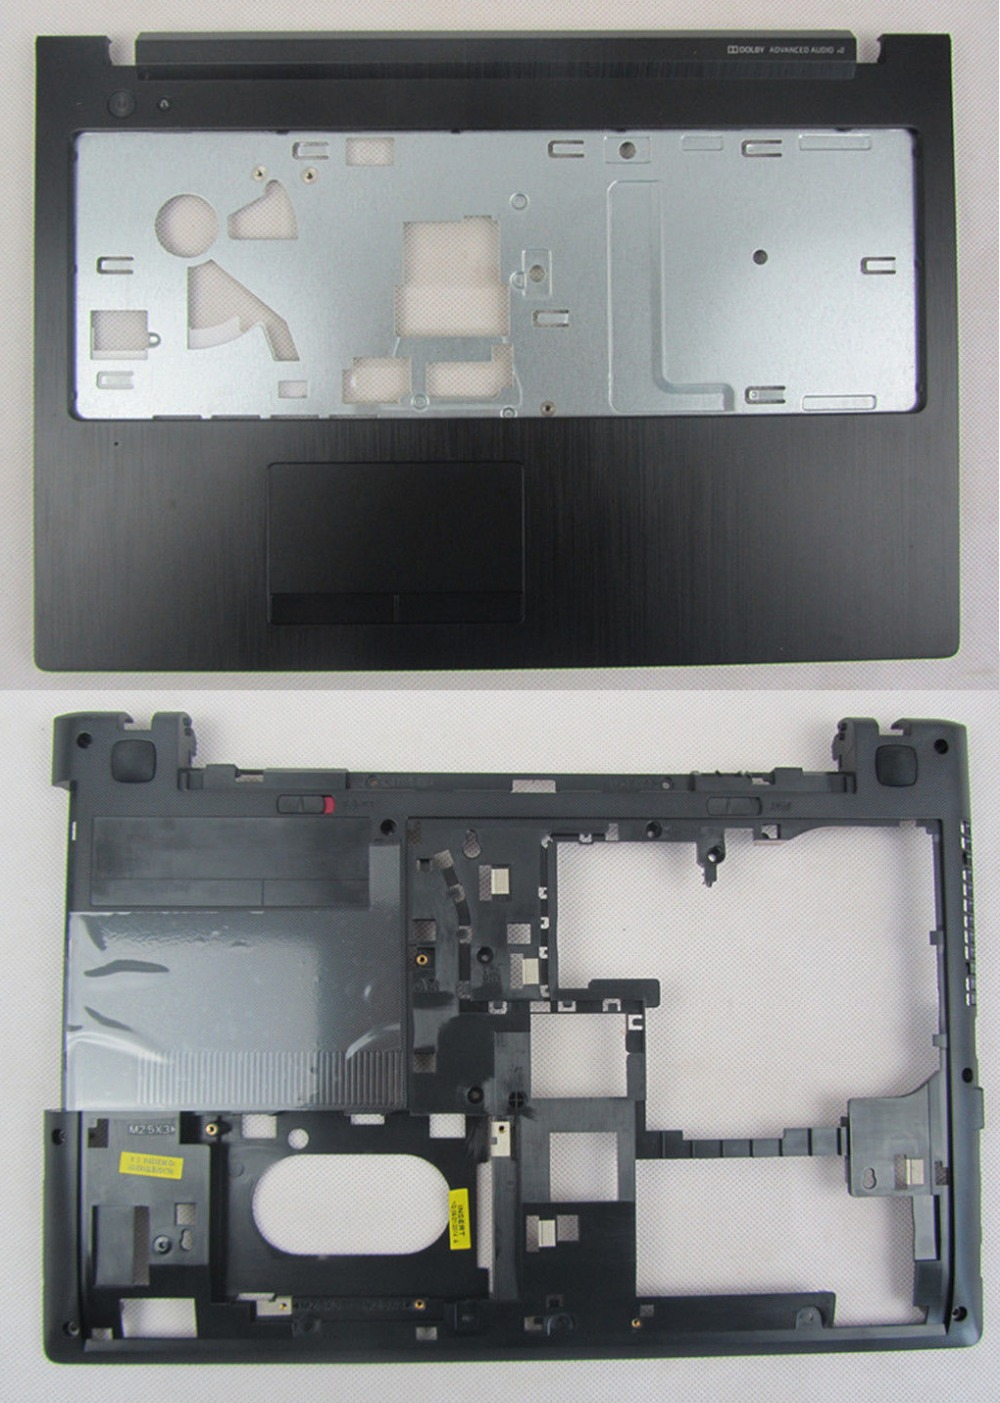 New Lenovo G500S G505S AP0YB000H00 Bottom Base Cover & Palmrest Upper Case AP0YB000I10 Combo new lenovo g500s g505s ap0yb000h00 bottom base cover